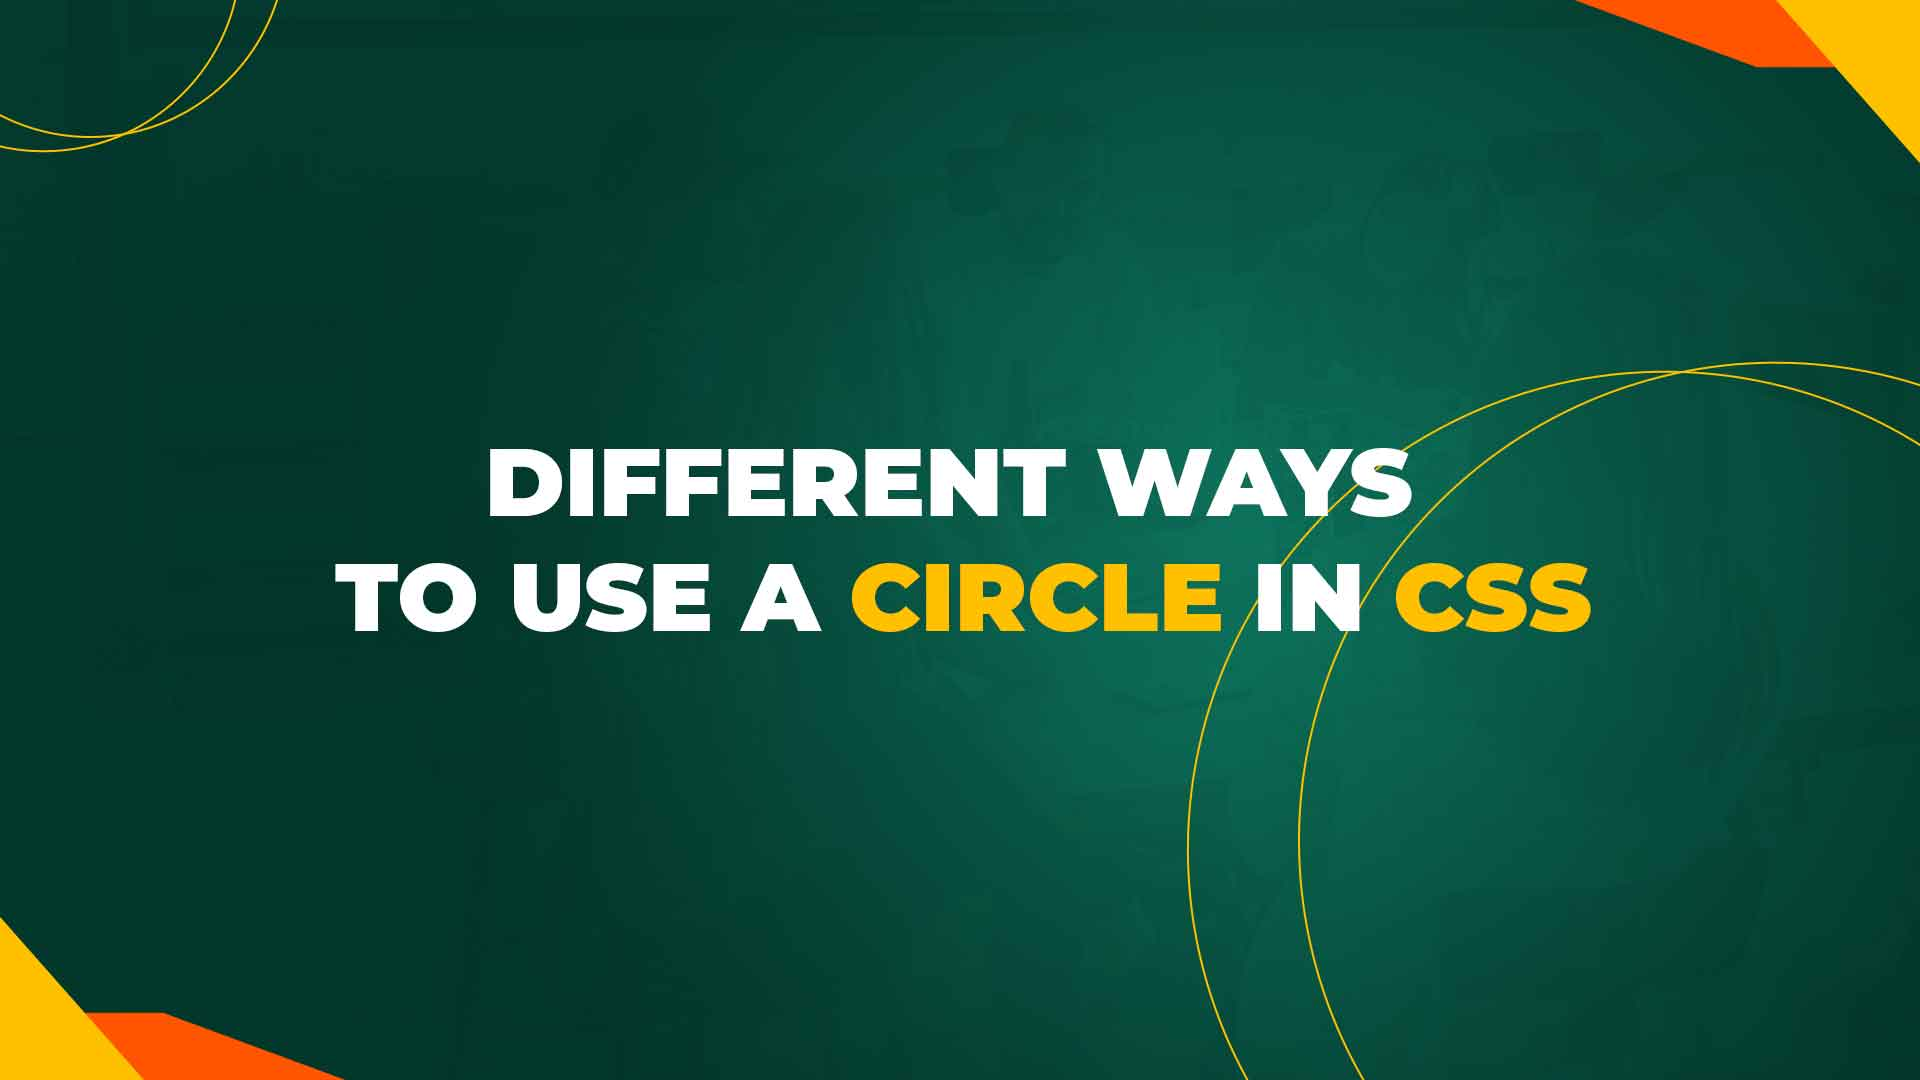 Different ways to use a Circle in CSS